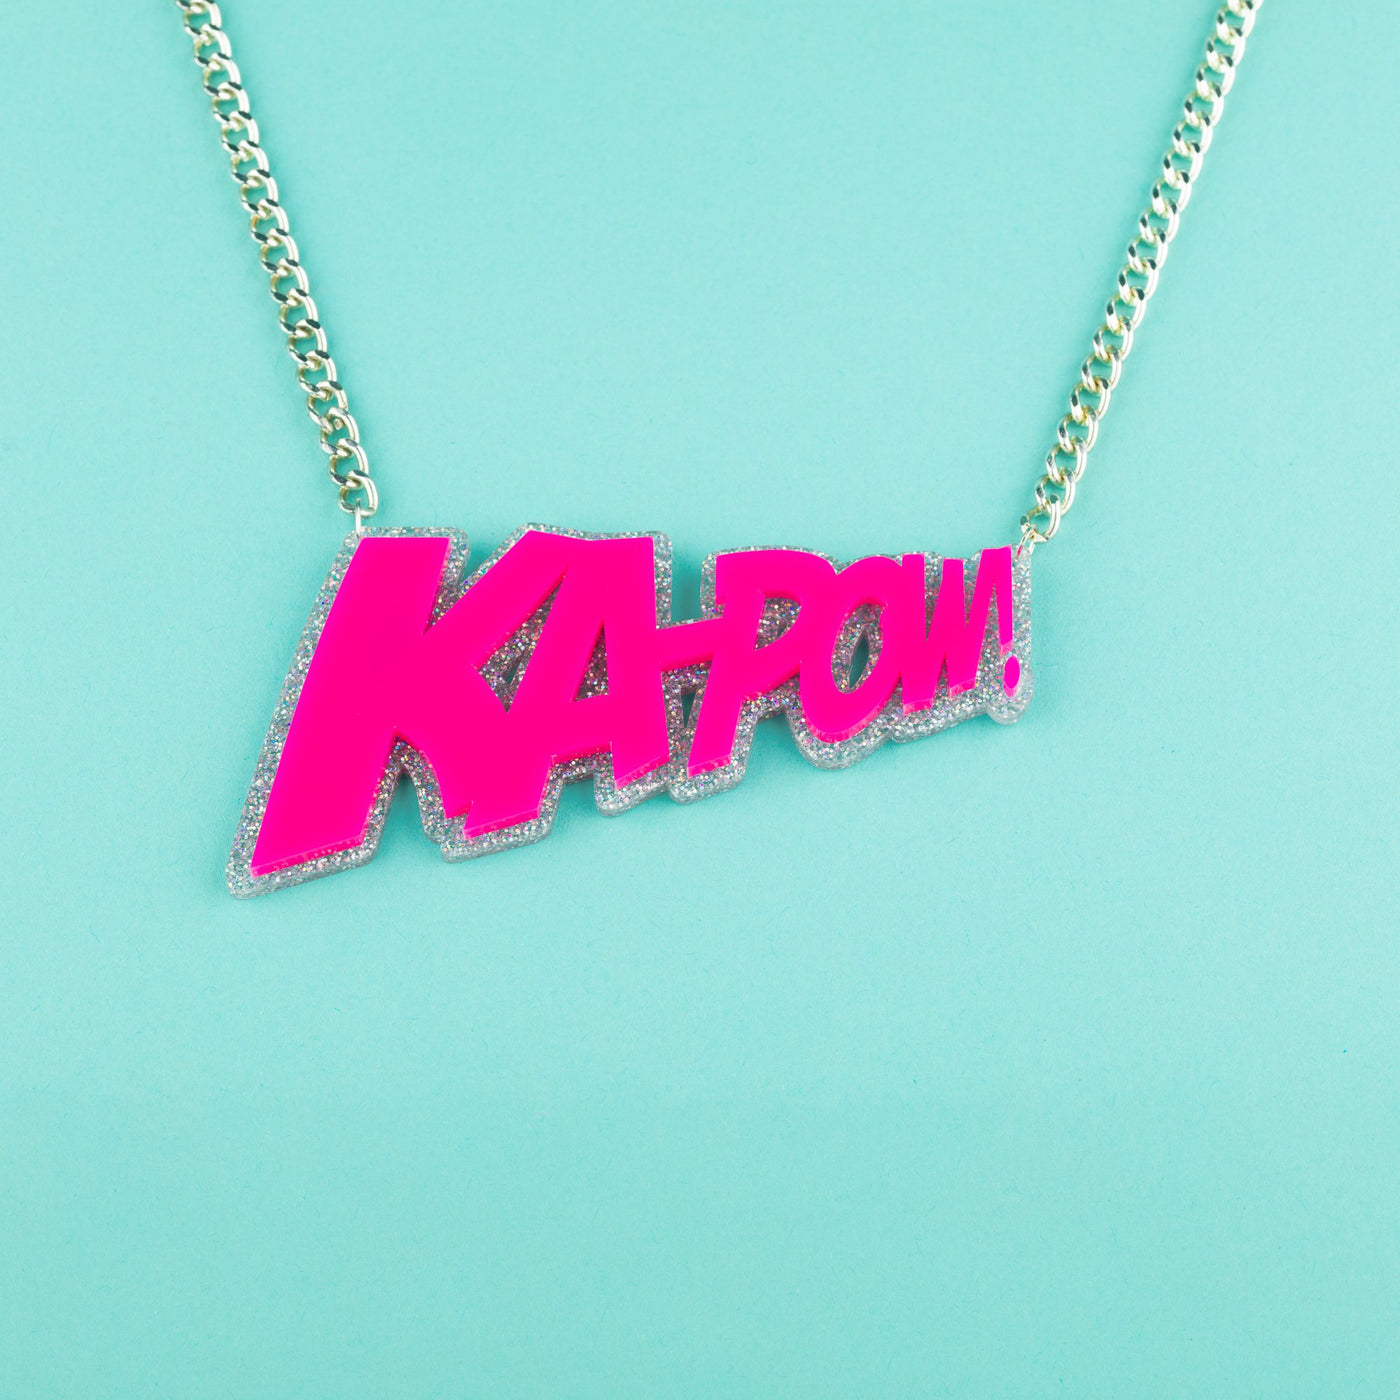 Slogan Necklace Ka-Pow! Pink and Silver